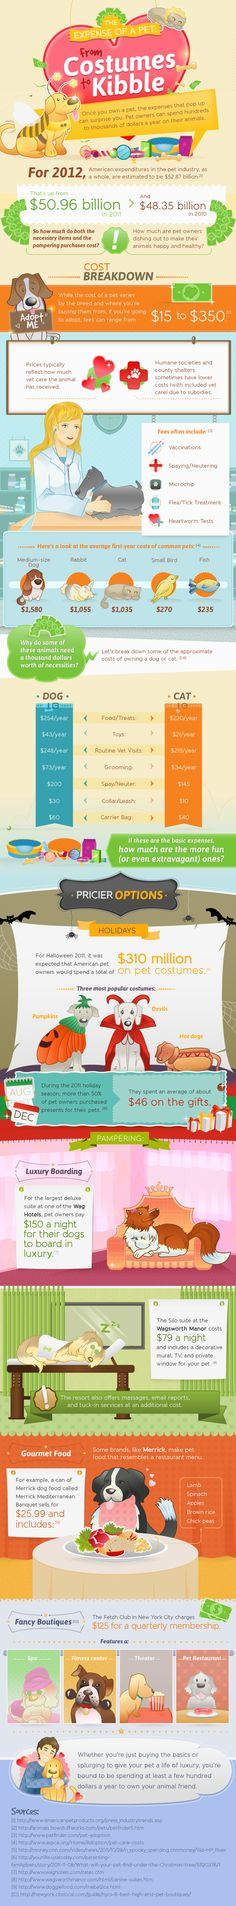 How much do you spend on your Pet's Halloween costume?